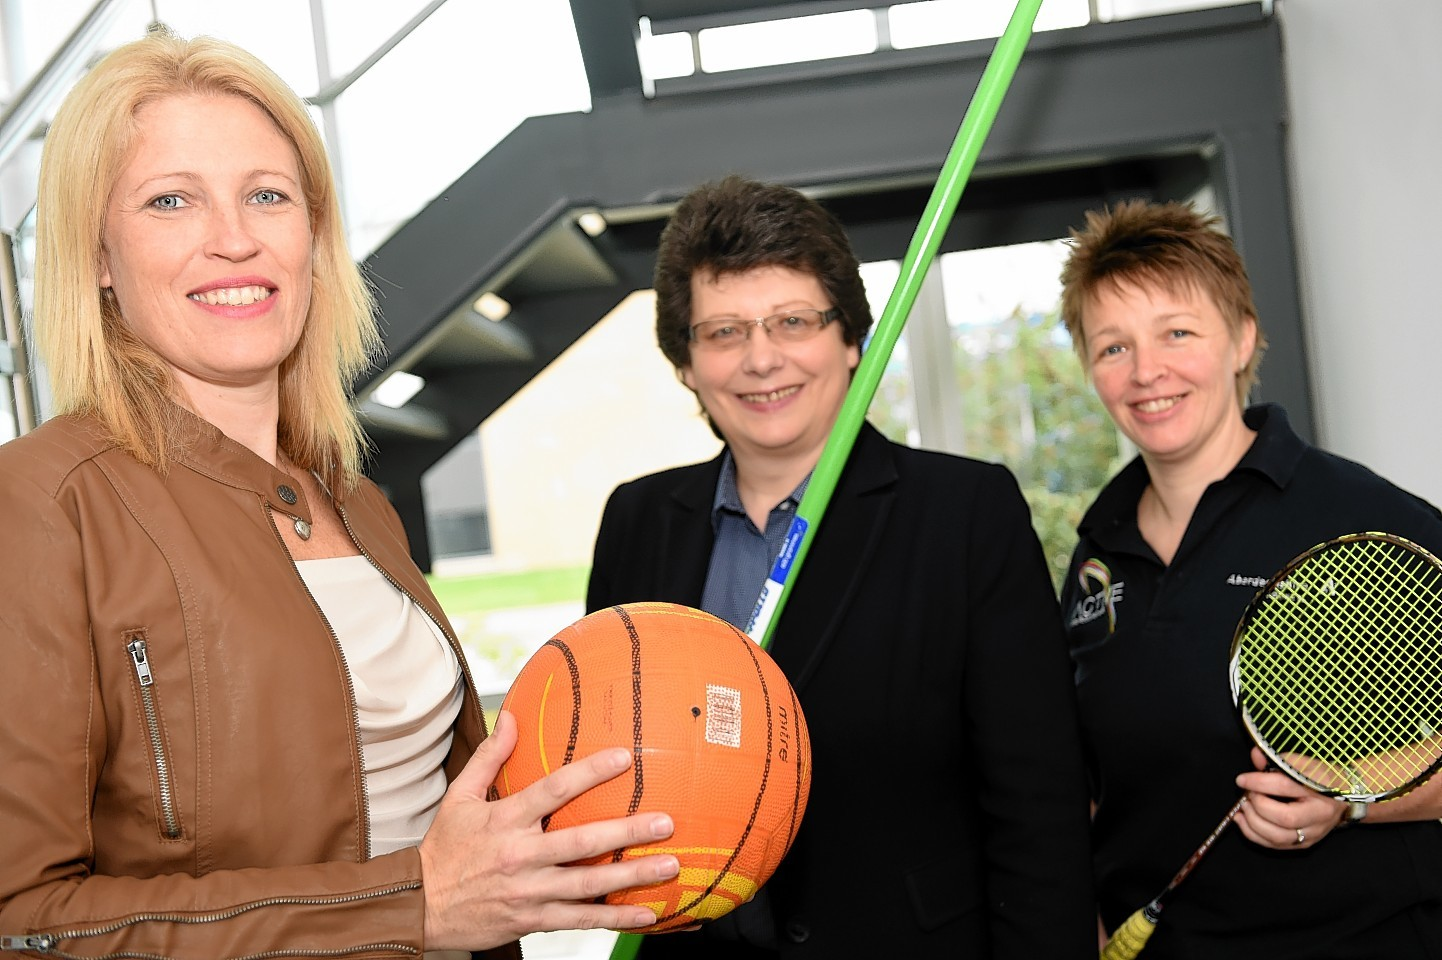 Kathryn Evans, who has been appointed as Project Manager, Moray Sports Centre, with Ann Rossiter, chairwoman of Sport Moray, and Angela Bell, Badminton Coach. Picture by Gordon Lennox